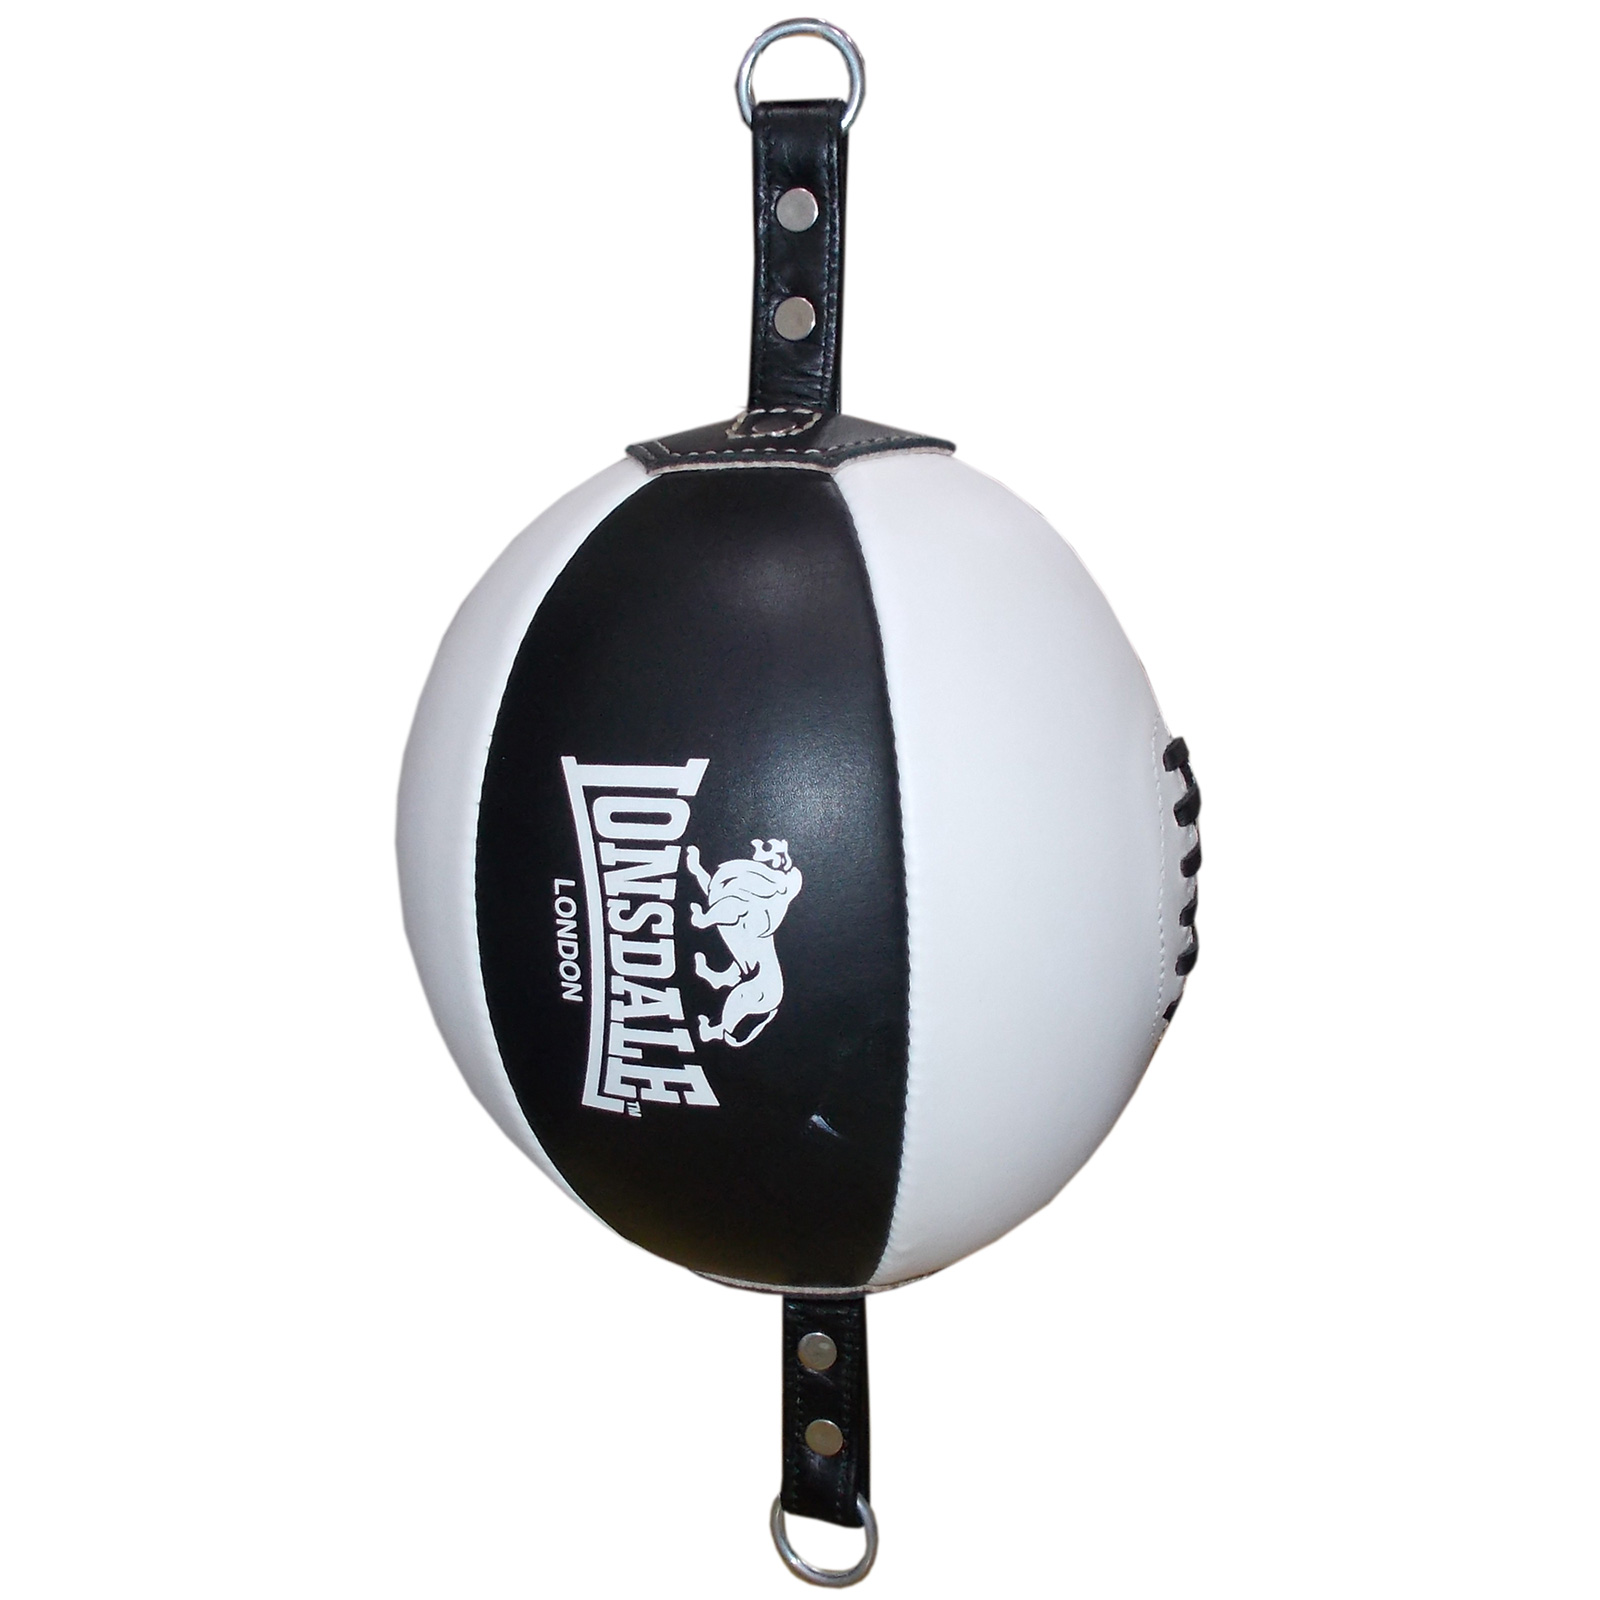 Lonsdale barn burner leather speedball uk 3 55 for Leather flooring cost